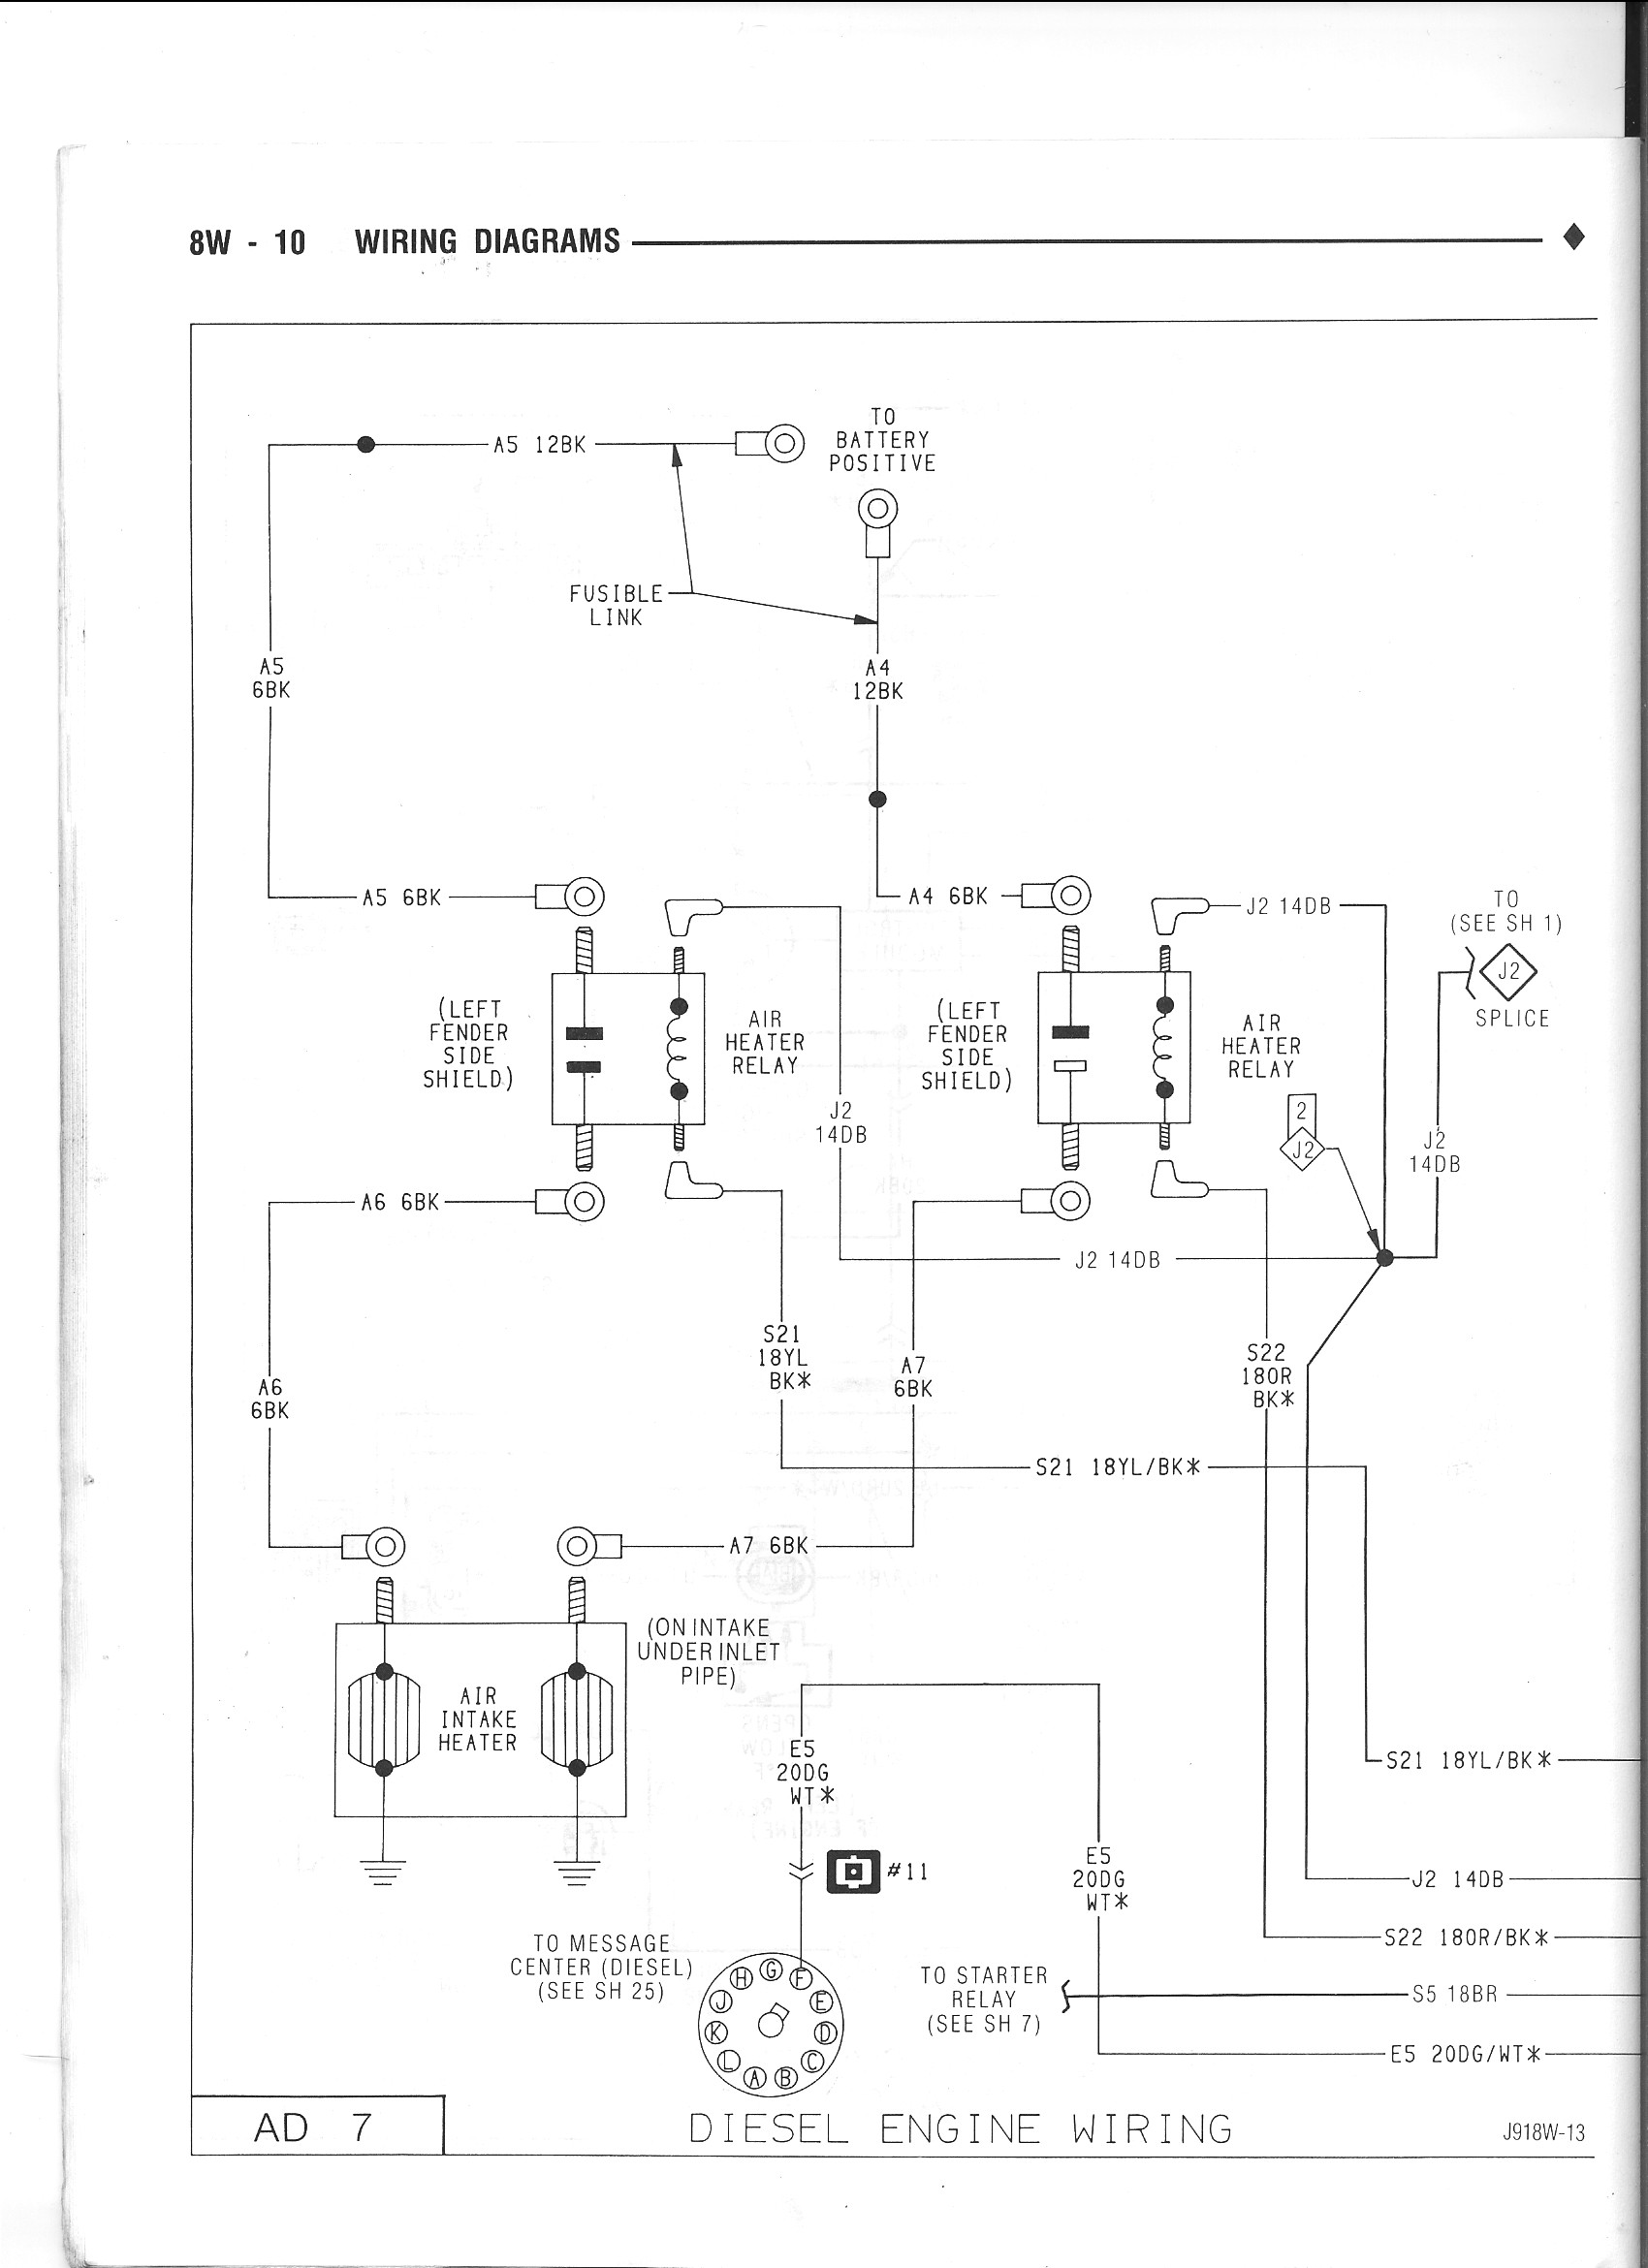 89 Dodge Dakota Wiring Diagram Diagrams Get Free Image About Engine For Of 25l